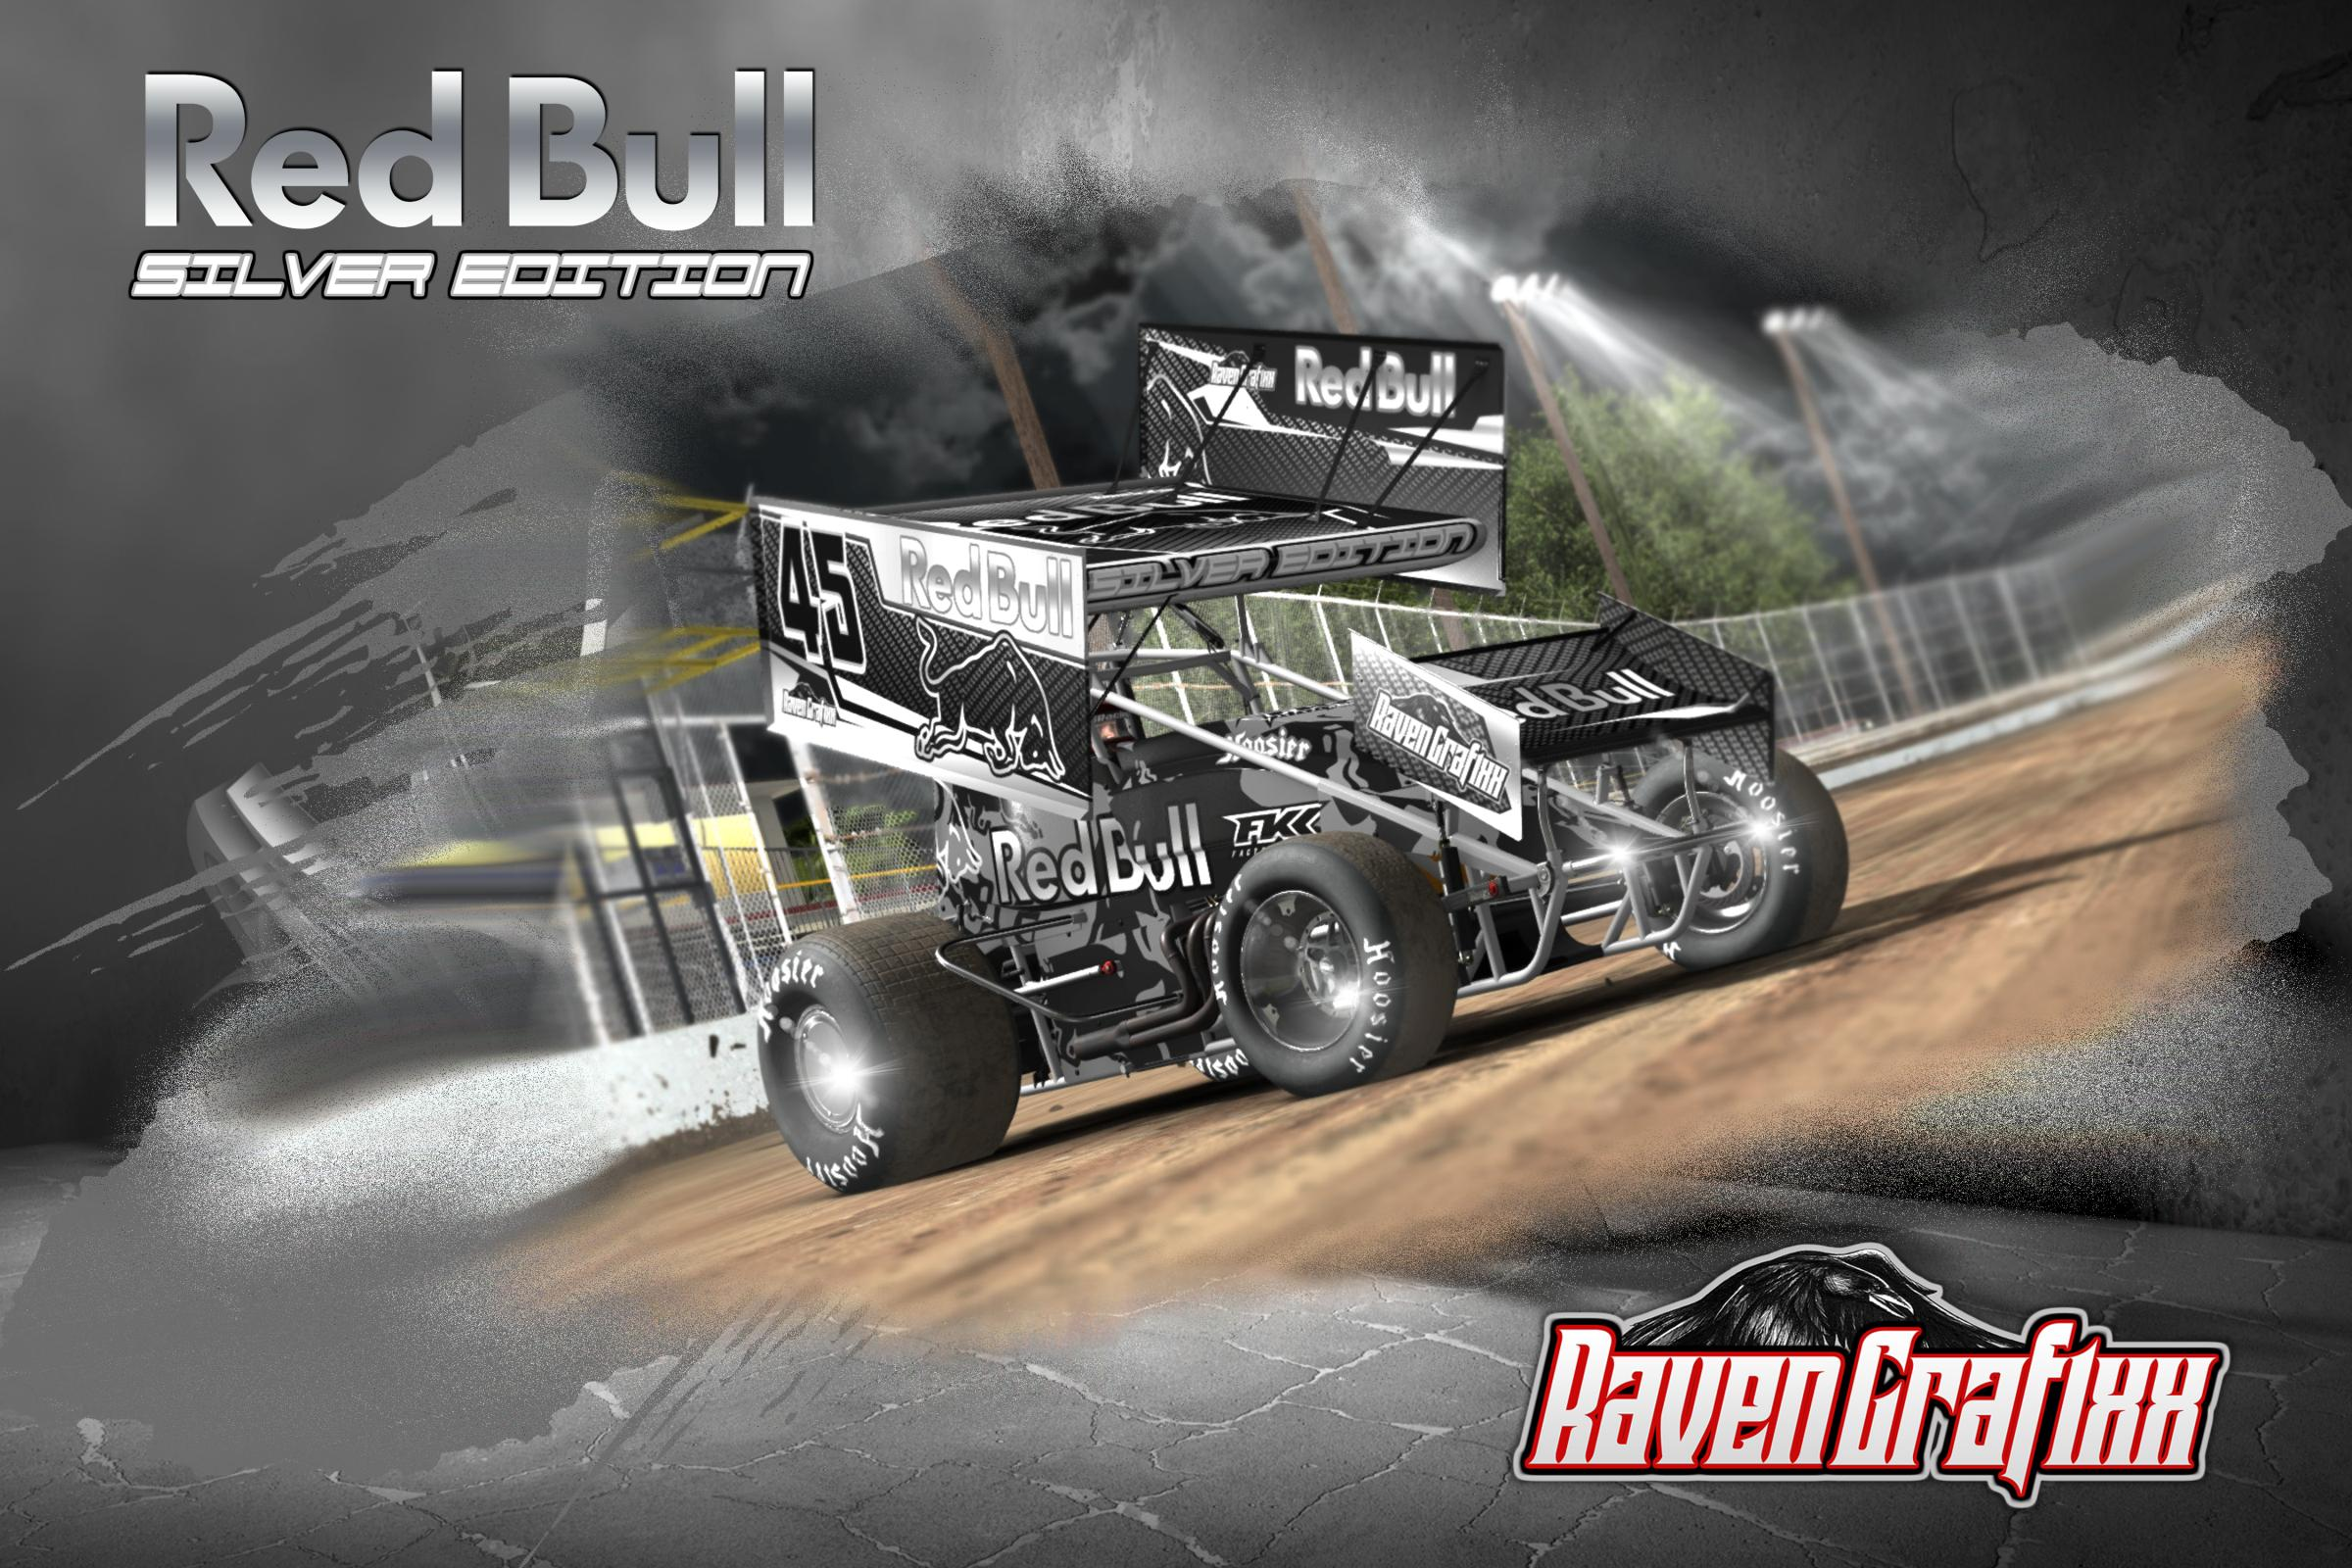 Preview of RedBull Dirt Sprint v2  SILVER EDITION TP by Doyle Lowrance